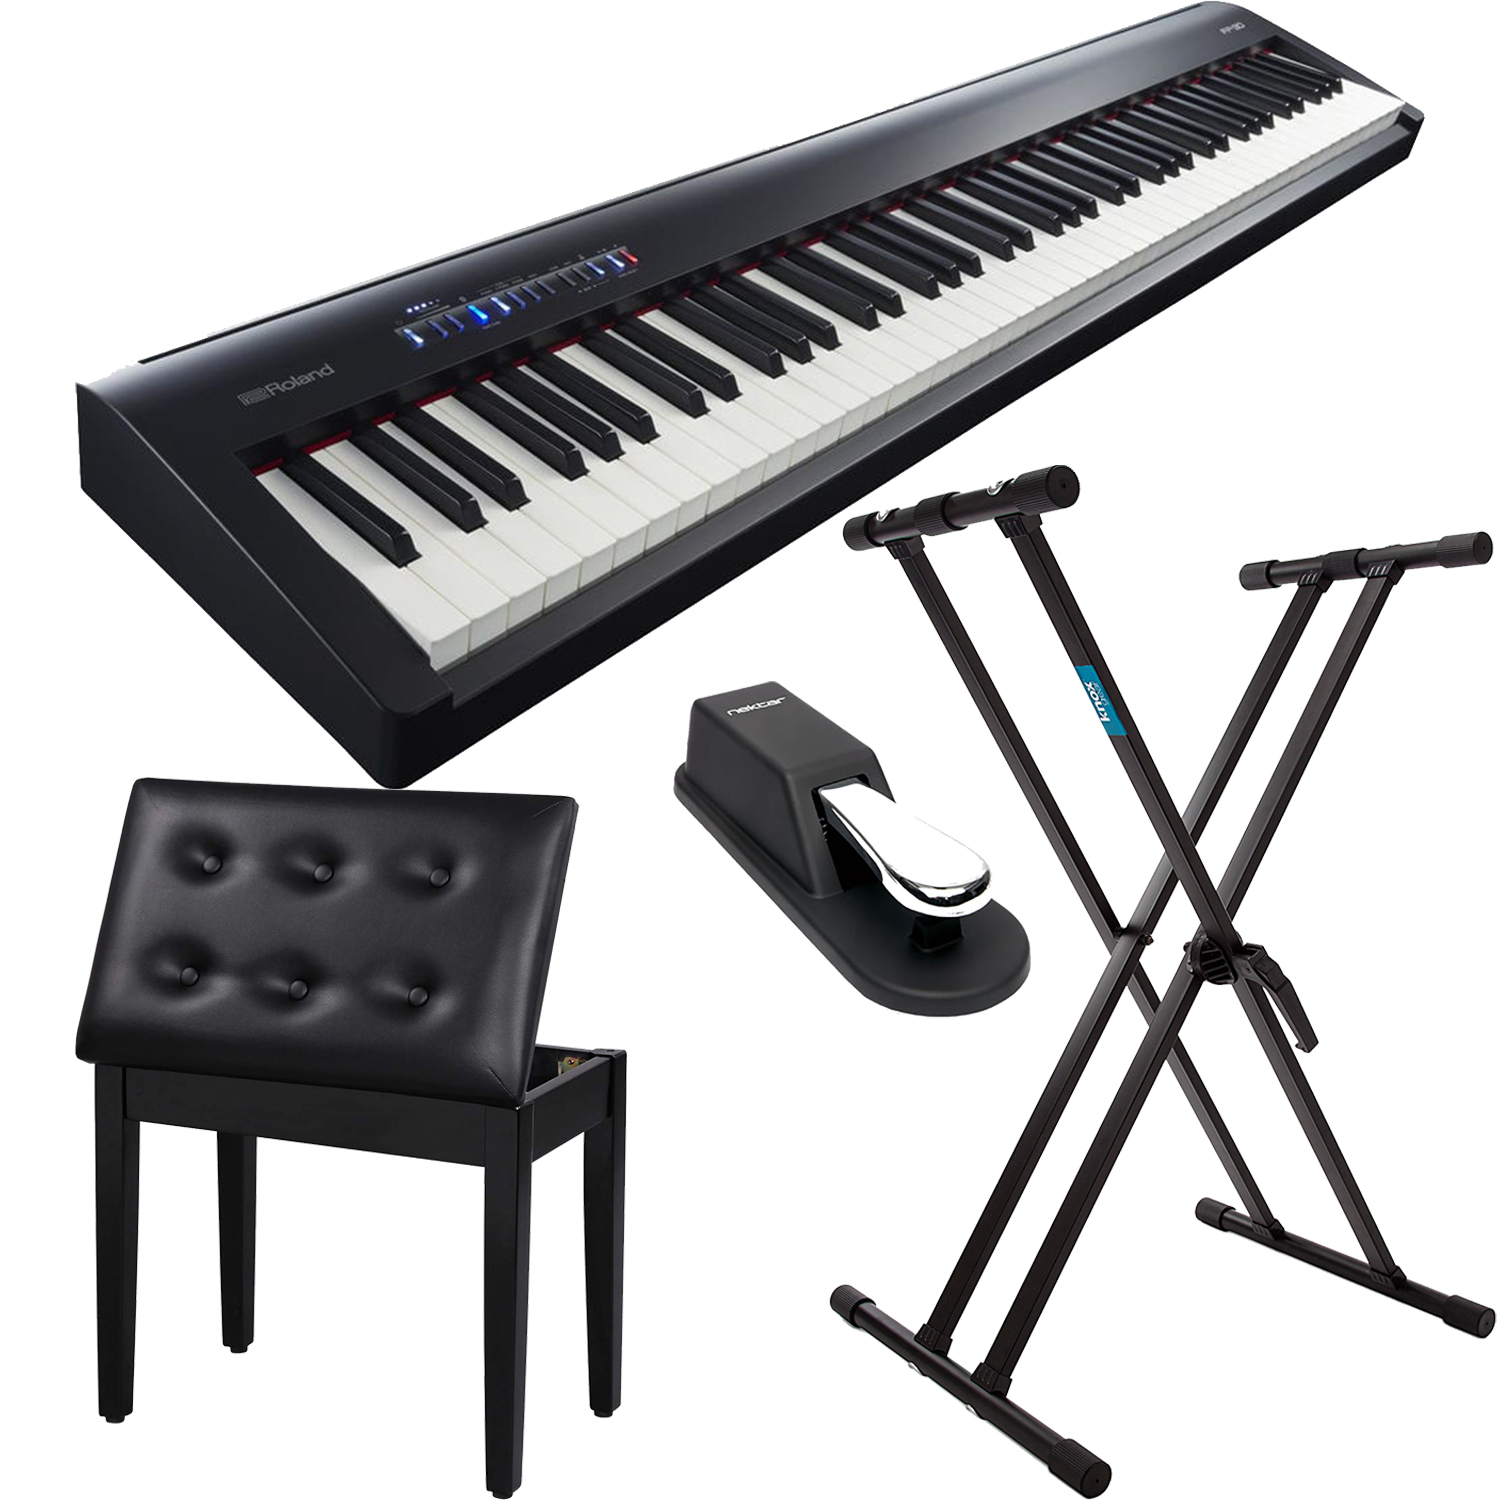 Roland Fp 30 Digital Piano Keyboard Stand Songmics Piano Bench Sustain Pedal Bundle Prosoundgear